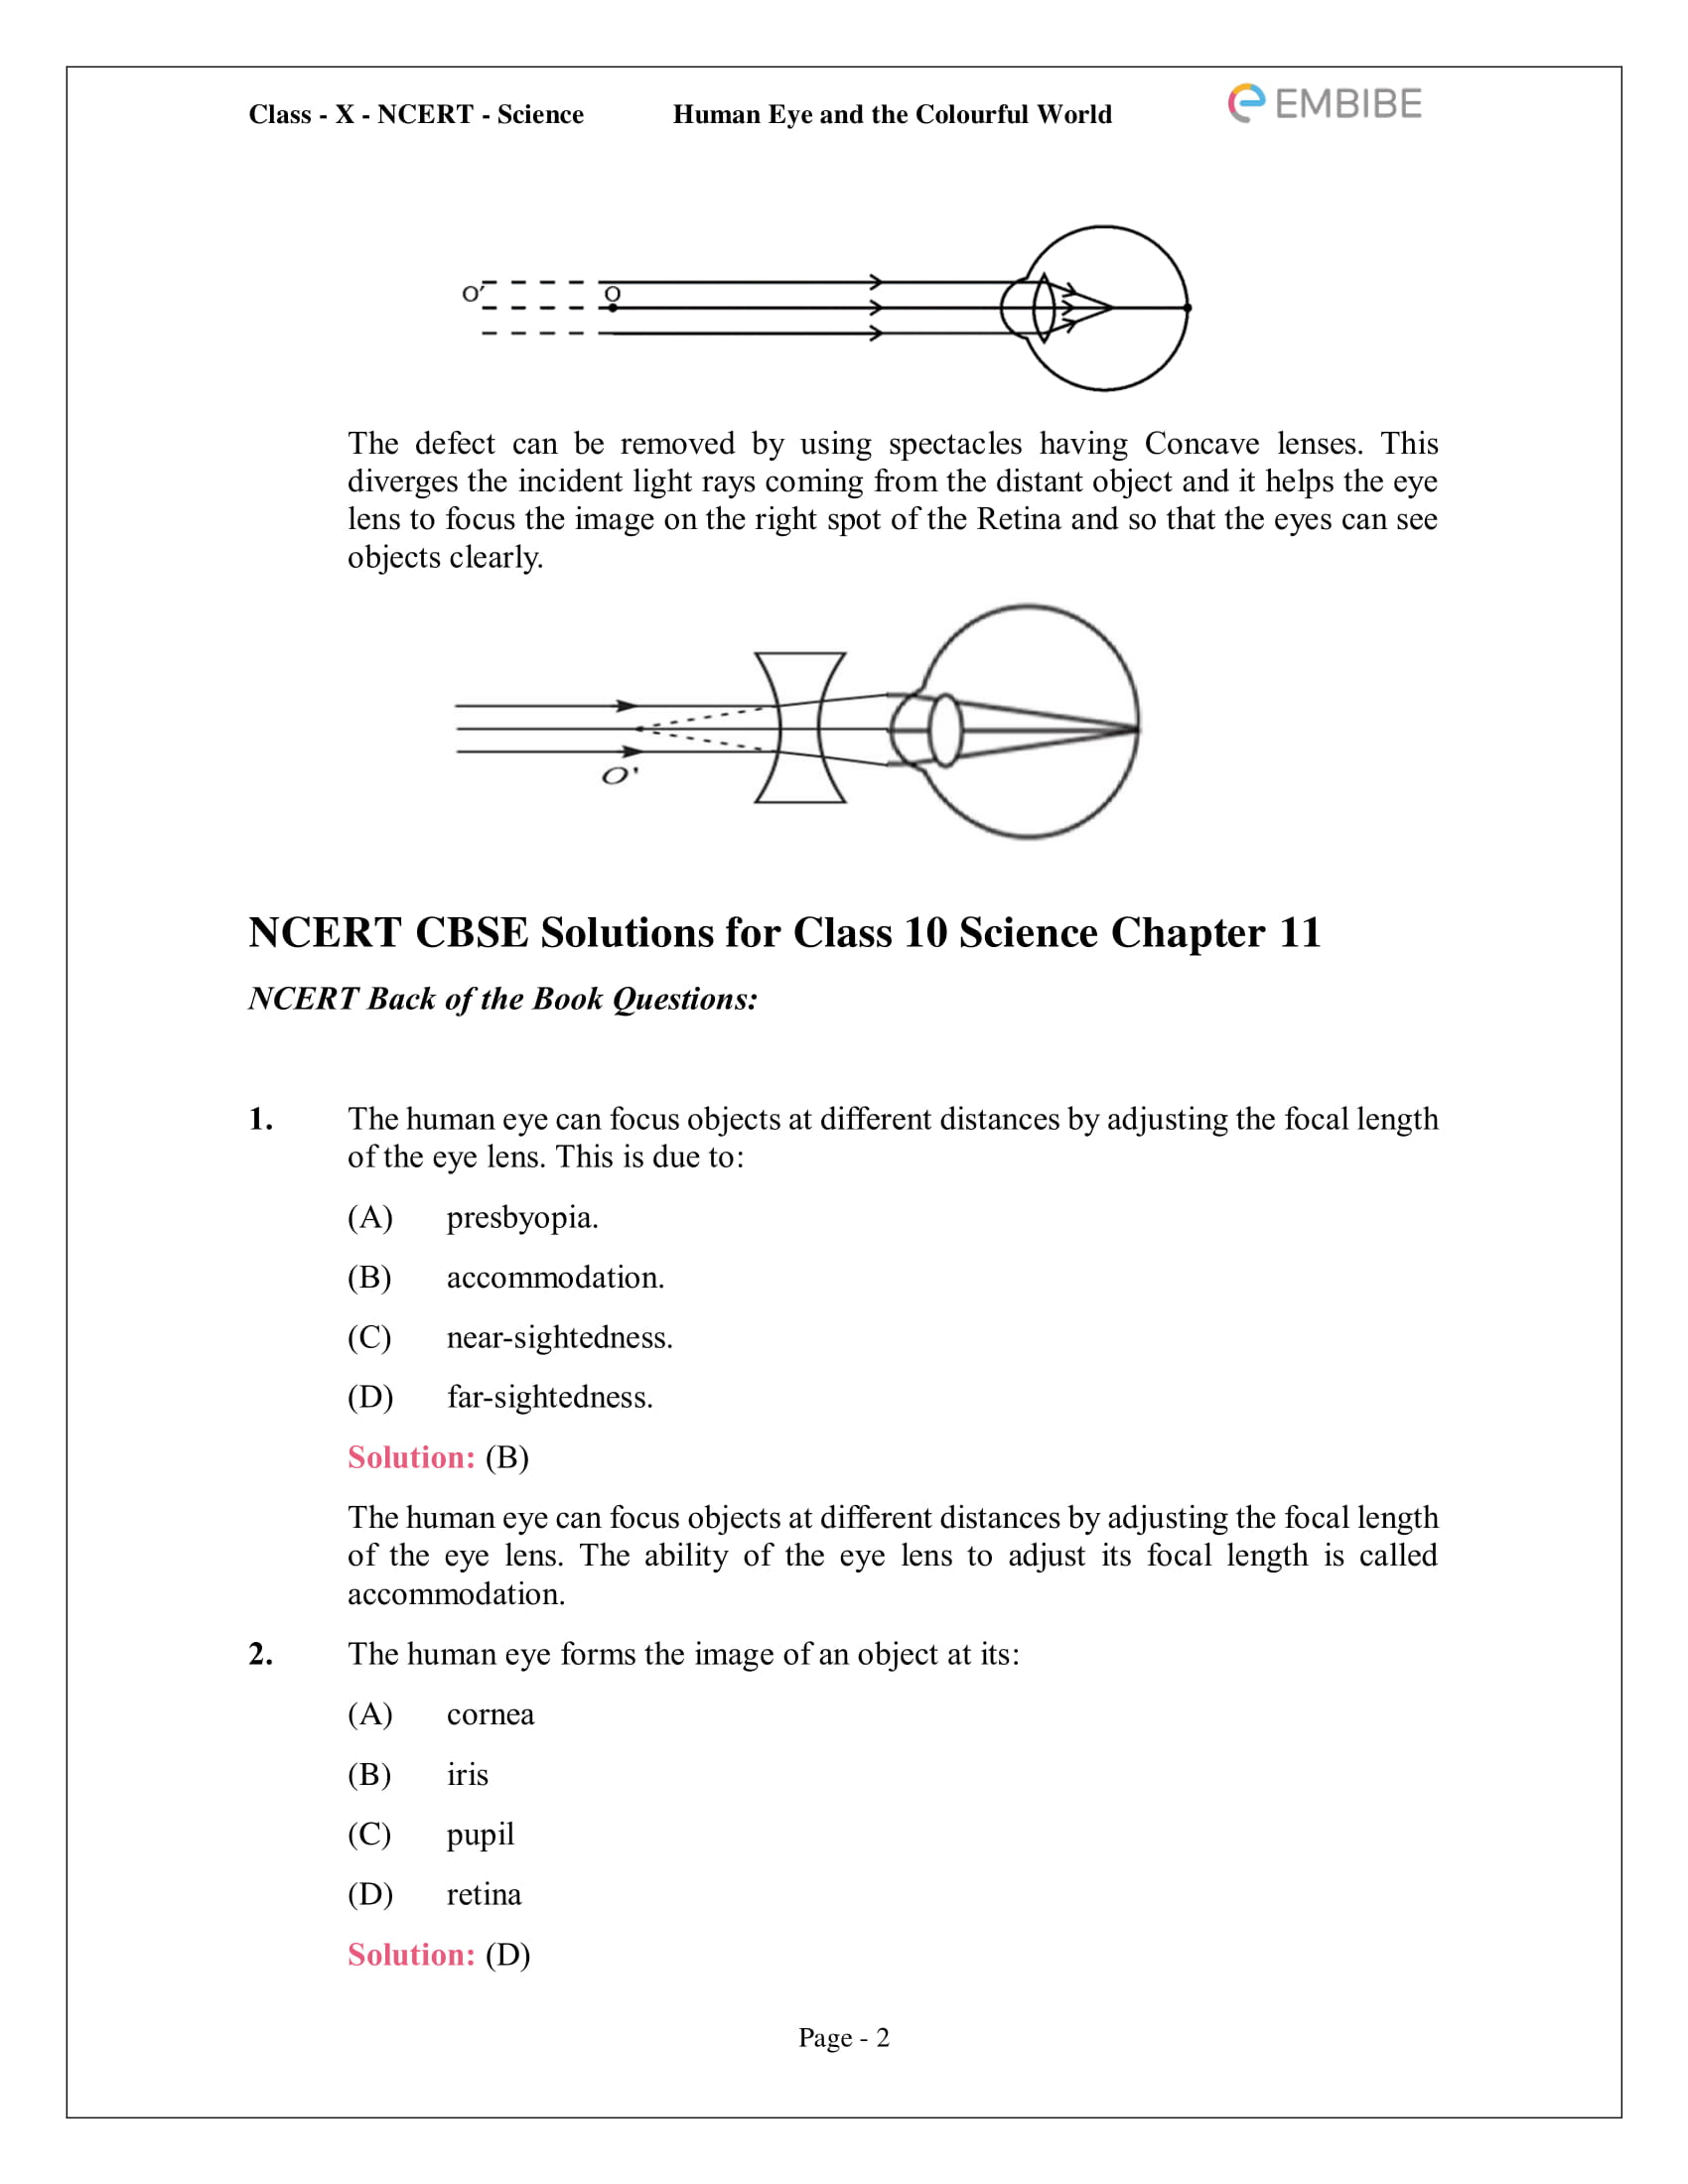 CBSE NCERT Solutions for Class 10 Science Chapter 11 - Human Eye And Colourful World - 2